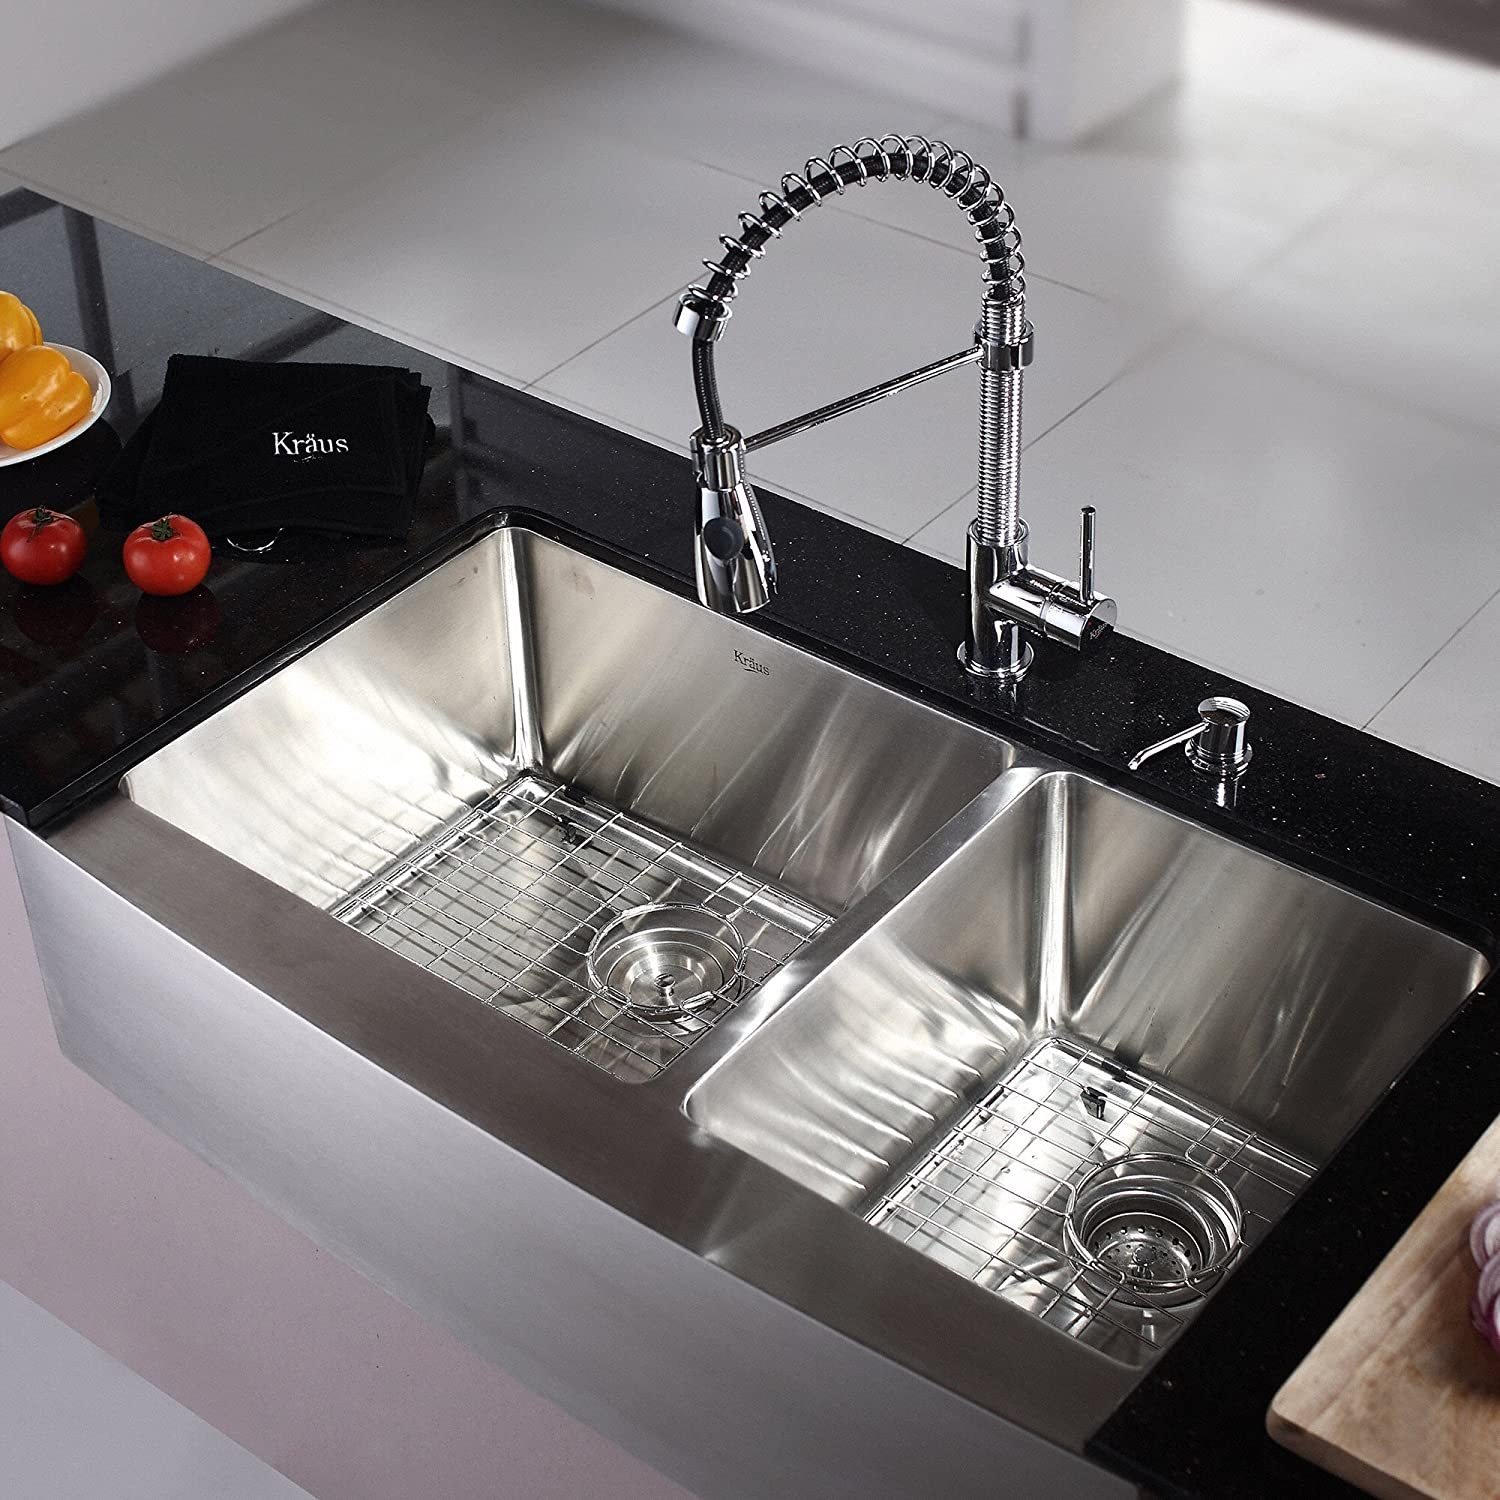 Hammered: Hammered Stainless Steel Sink Comes With An Amazing Appearance  That Uniquely Stands Out. Thus, It Is Vital To Know How And Where It Should  Be ...